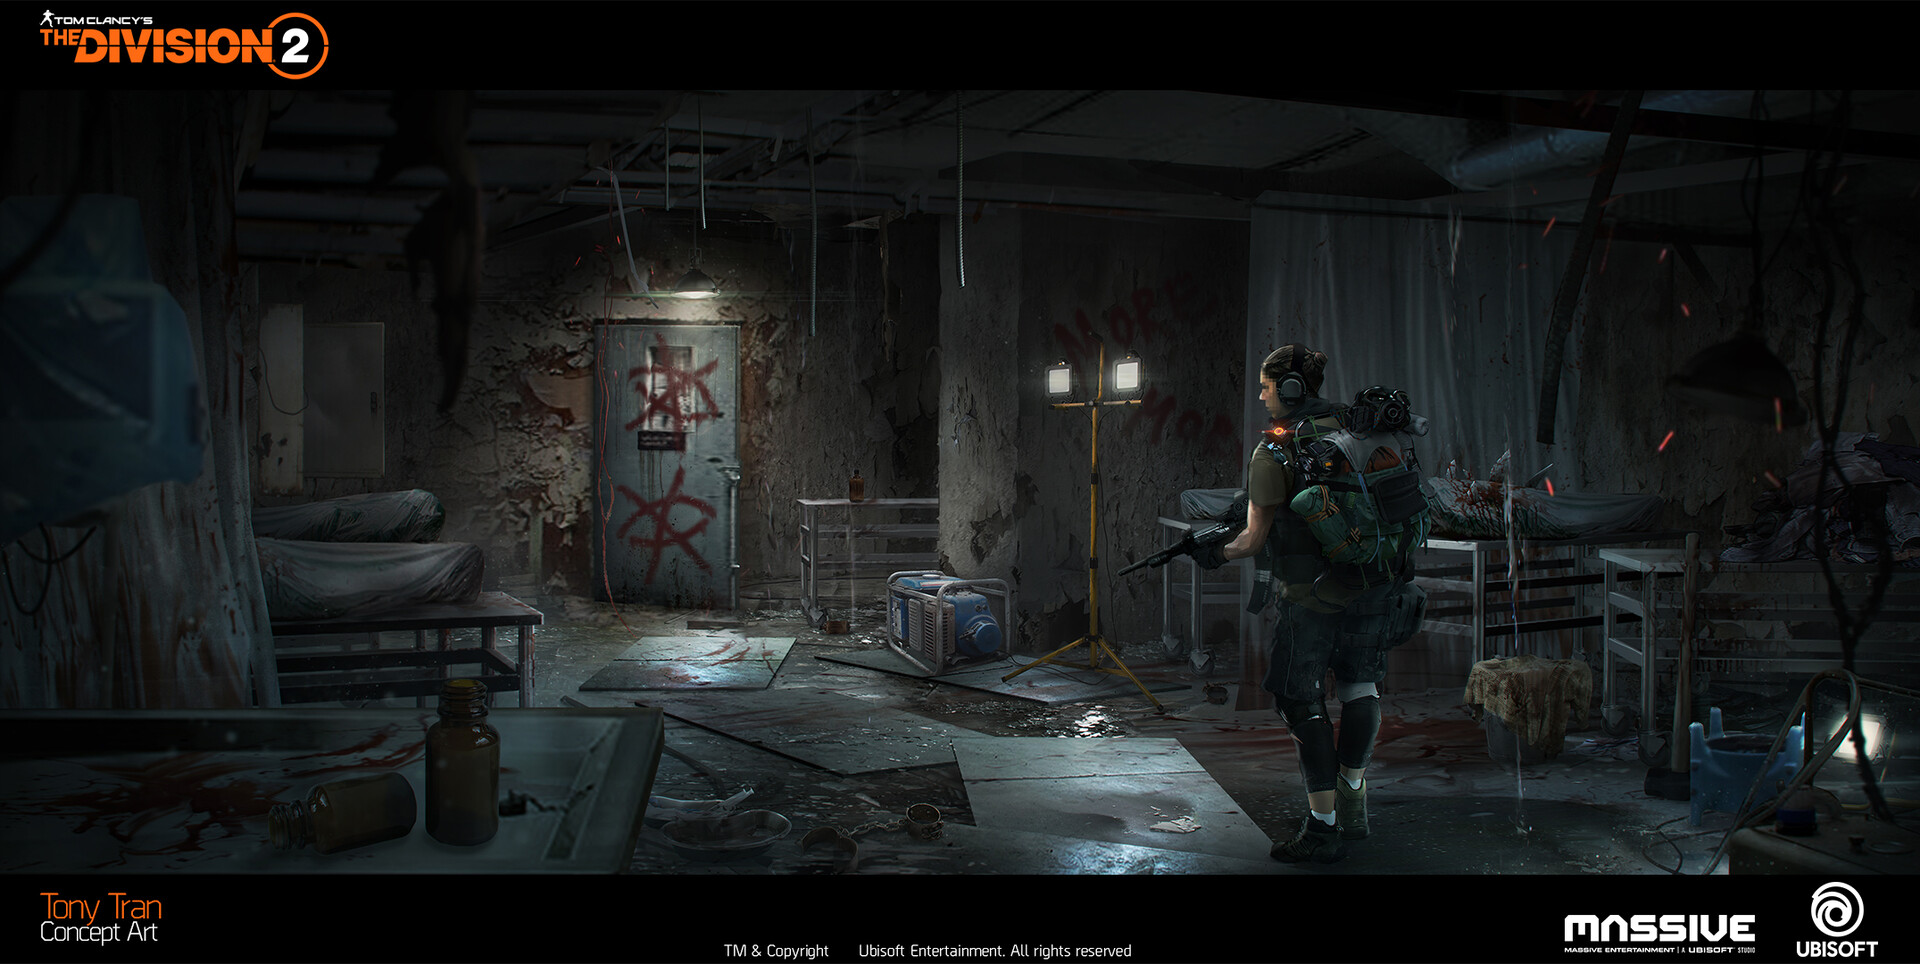 Tony Tran The Division 2 Concept Art Dcd Headquarters